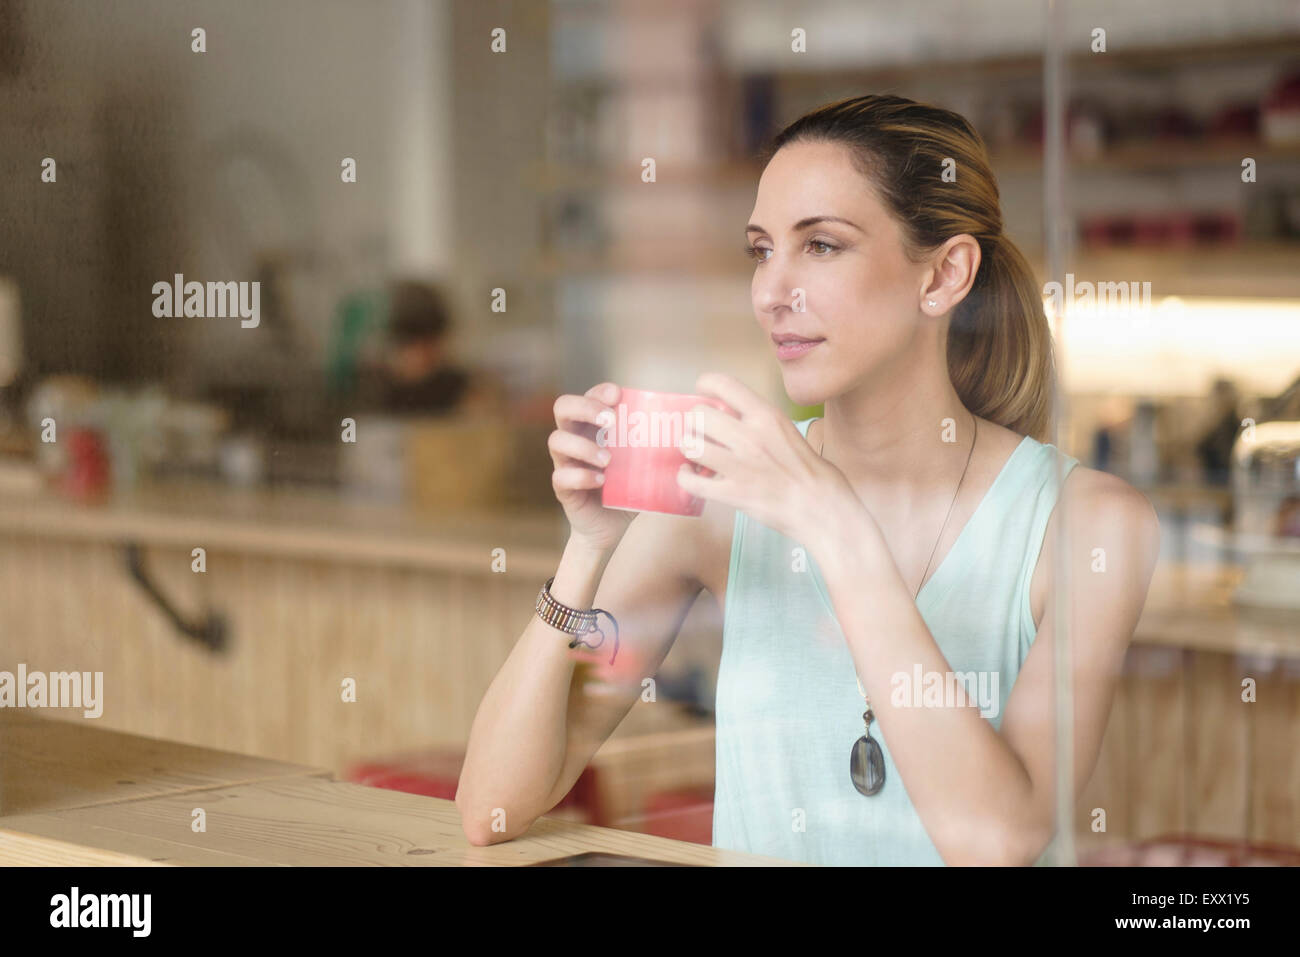 Woman holding Coffee cup in cafe Photo Stock